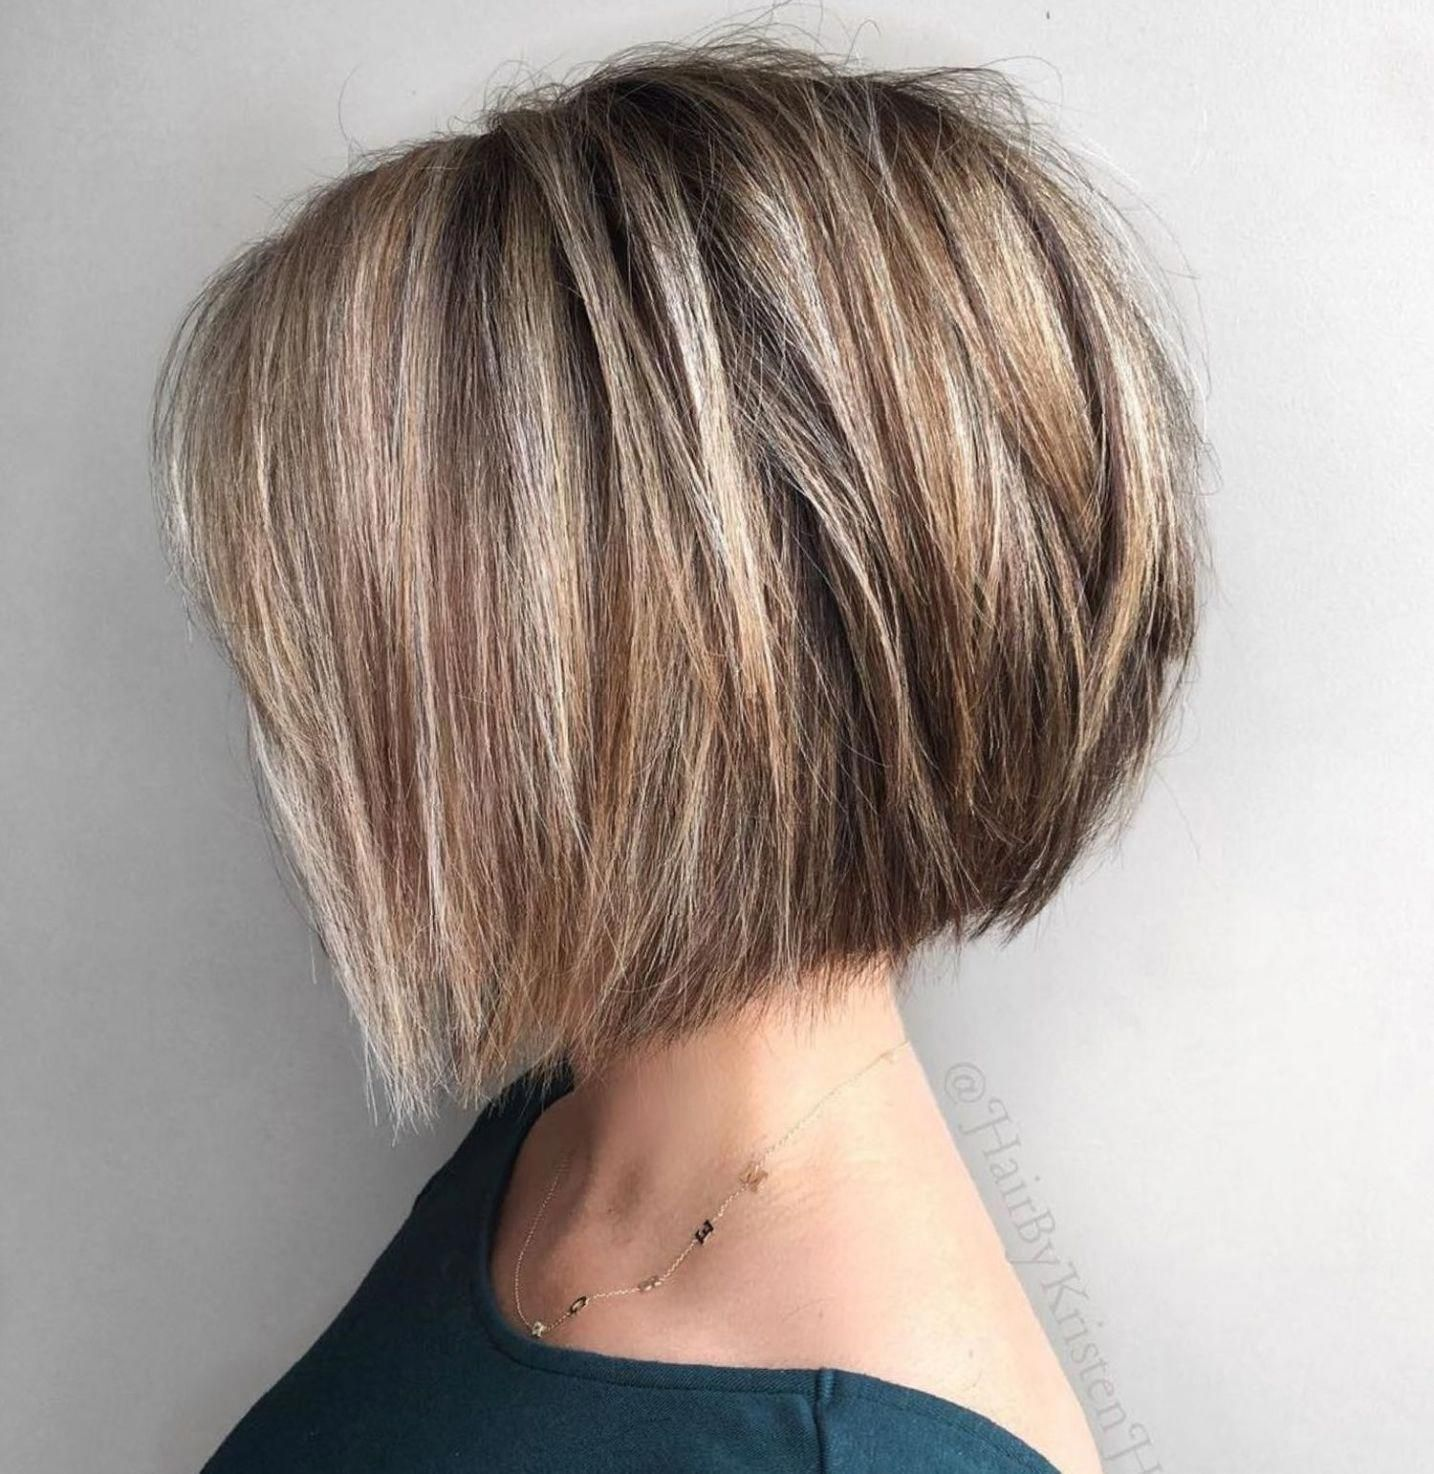 Angled Choppy Bob For Straight Thick Hair Shortbobhairstyles Short Hairstyles For Thick Hair Thick Hair Styles Bob Hairstyles For Thick